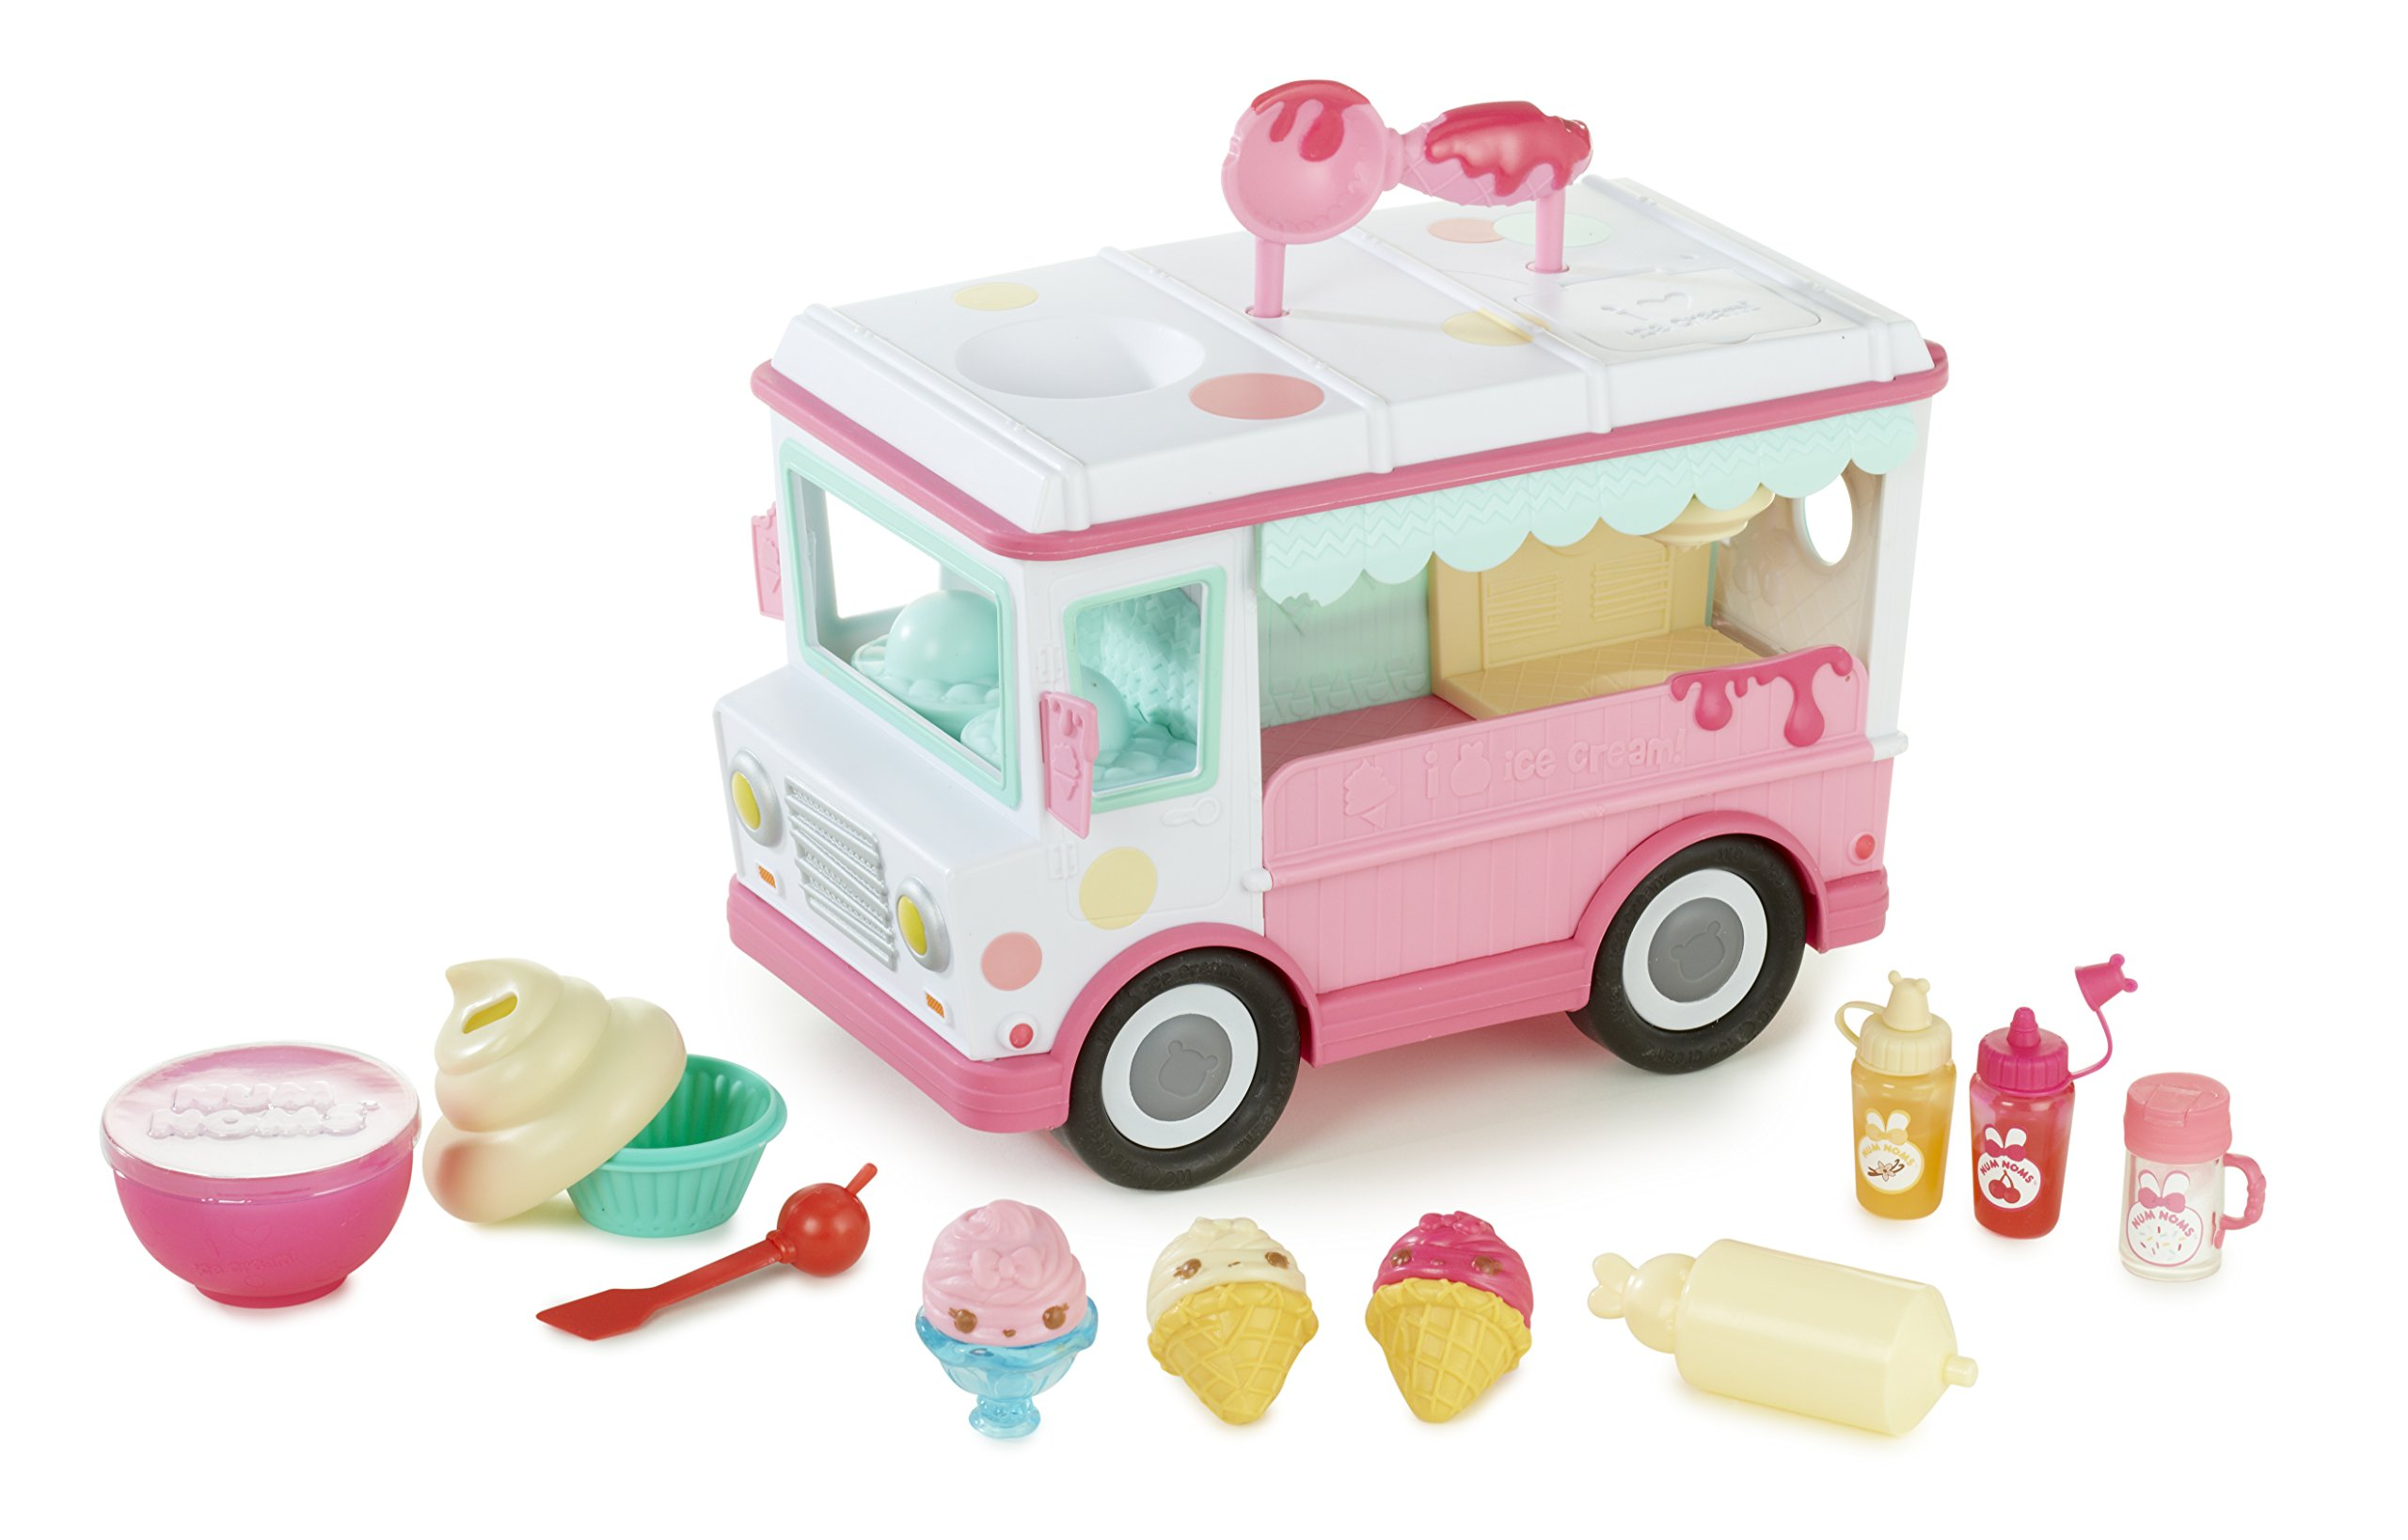 Num Noms Lipgloss Truck Craft Kit by Num Noms